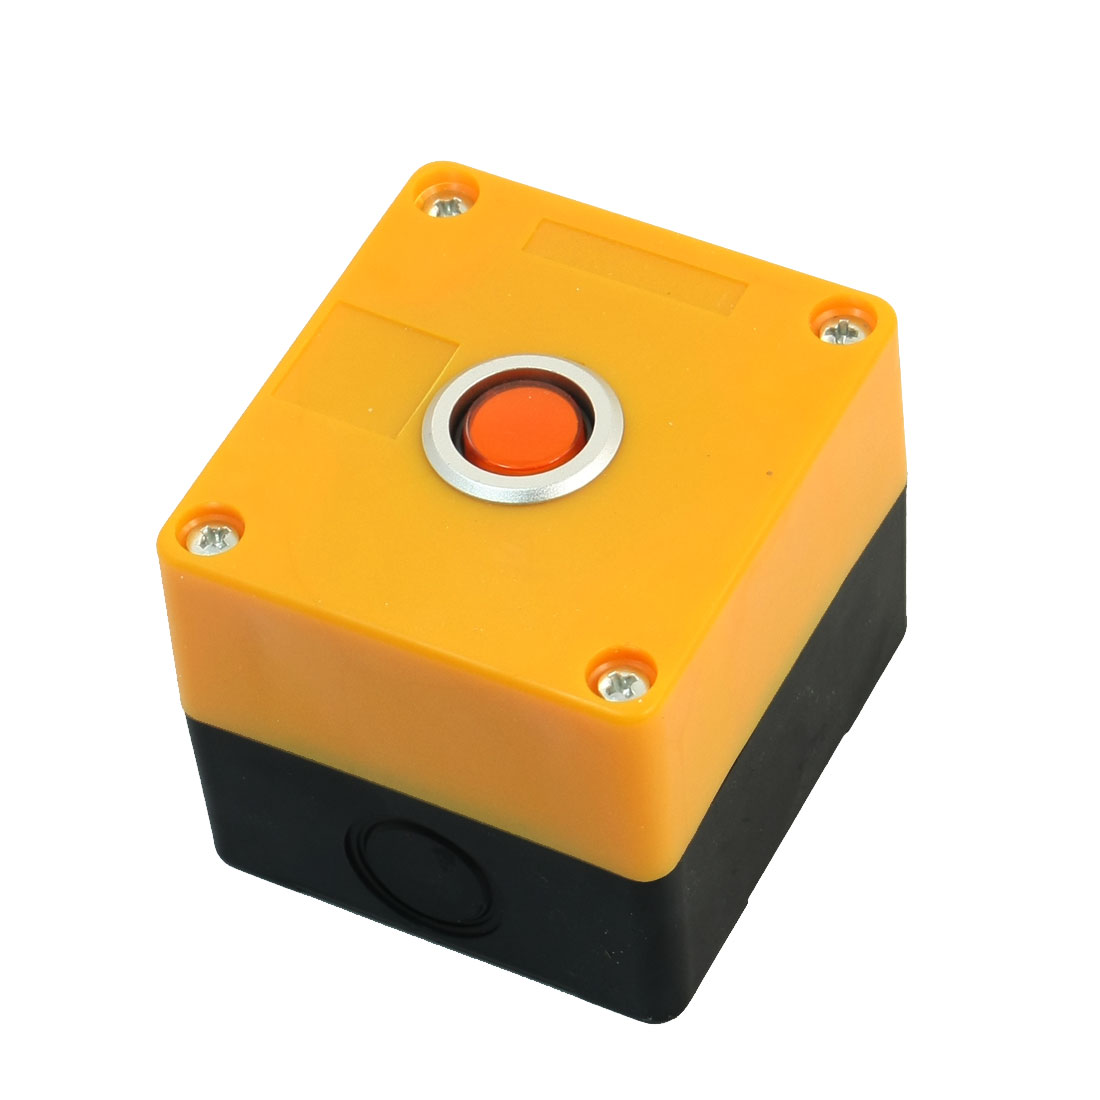 Orange 220V Pilot Lamp AC 250 Volt 5A SPDT 5 Terminals Self-locking Single Hole Pushbutton Push Button Yellow Plastic Control Station Box